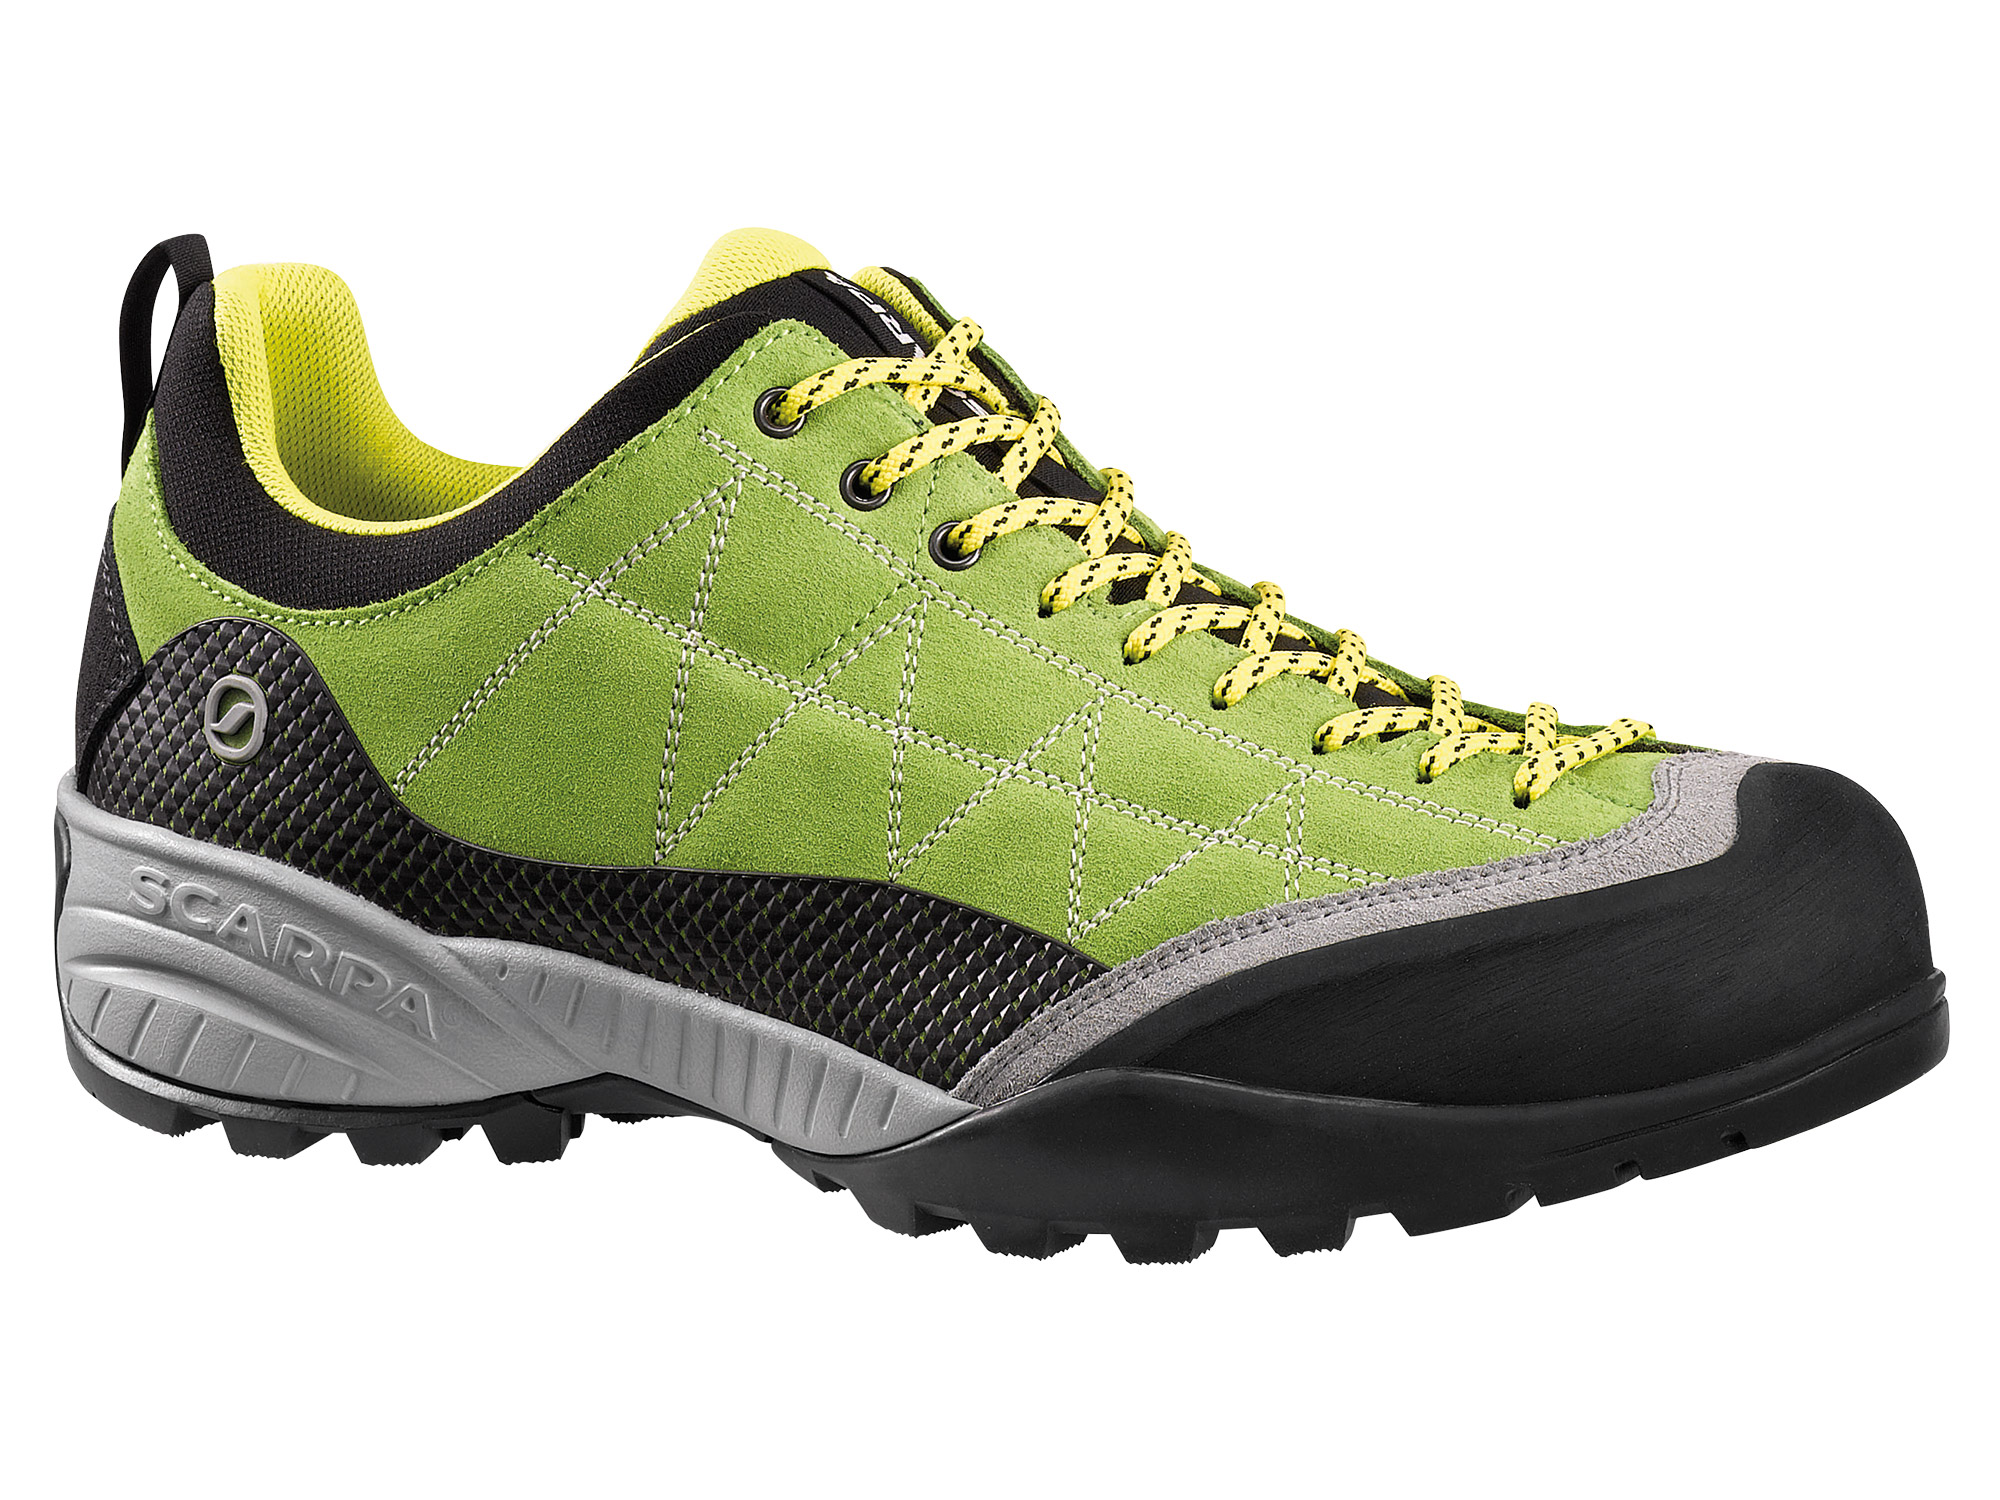 Scarpa - Zen Pro Spring-Yellow - Approach Shoes - 48